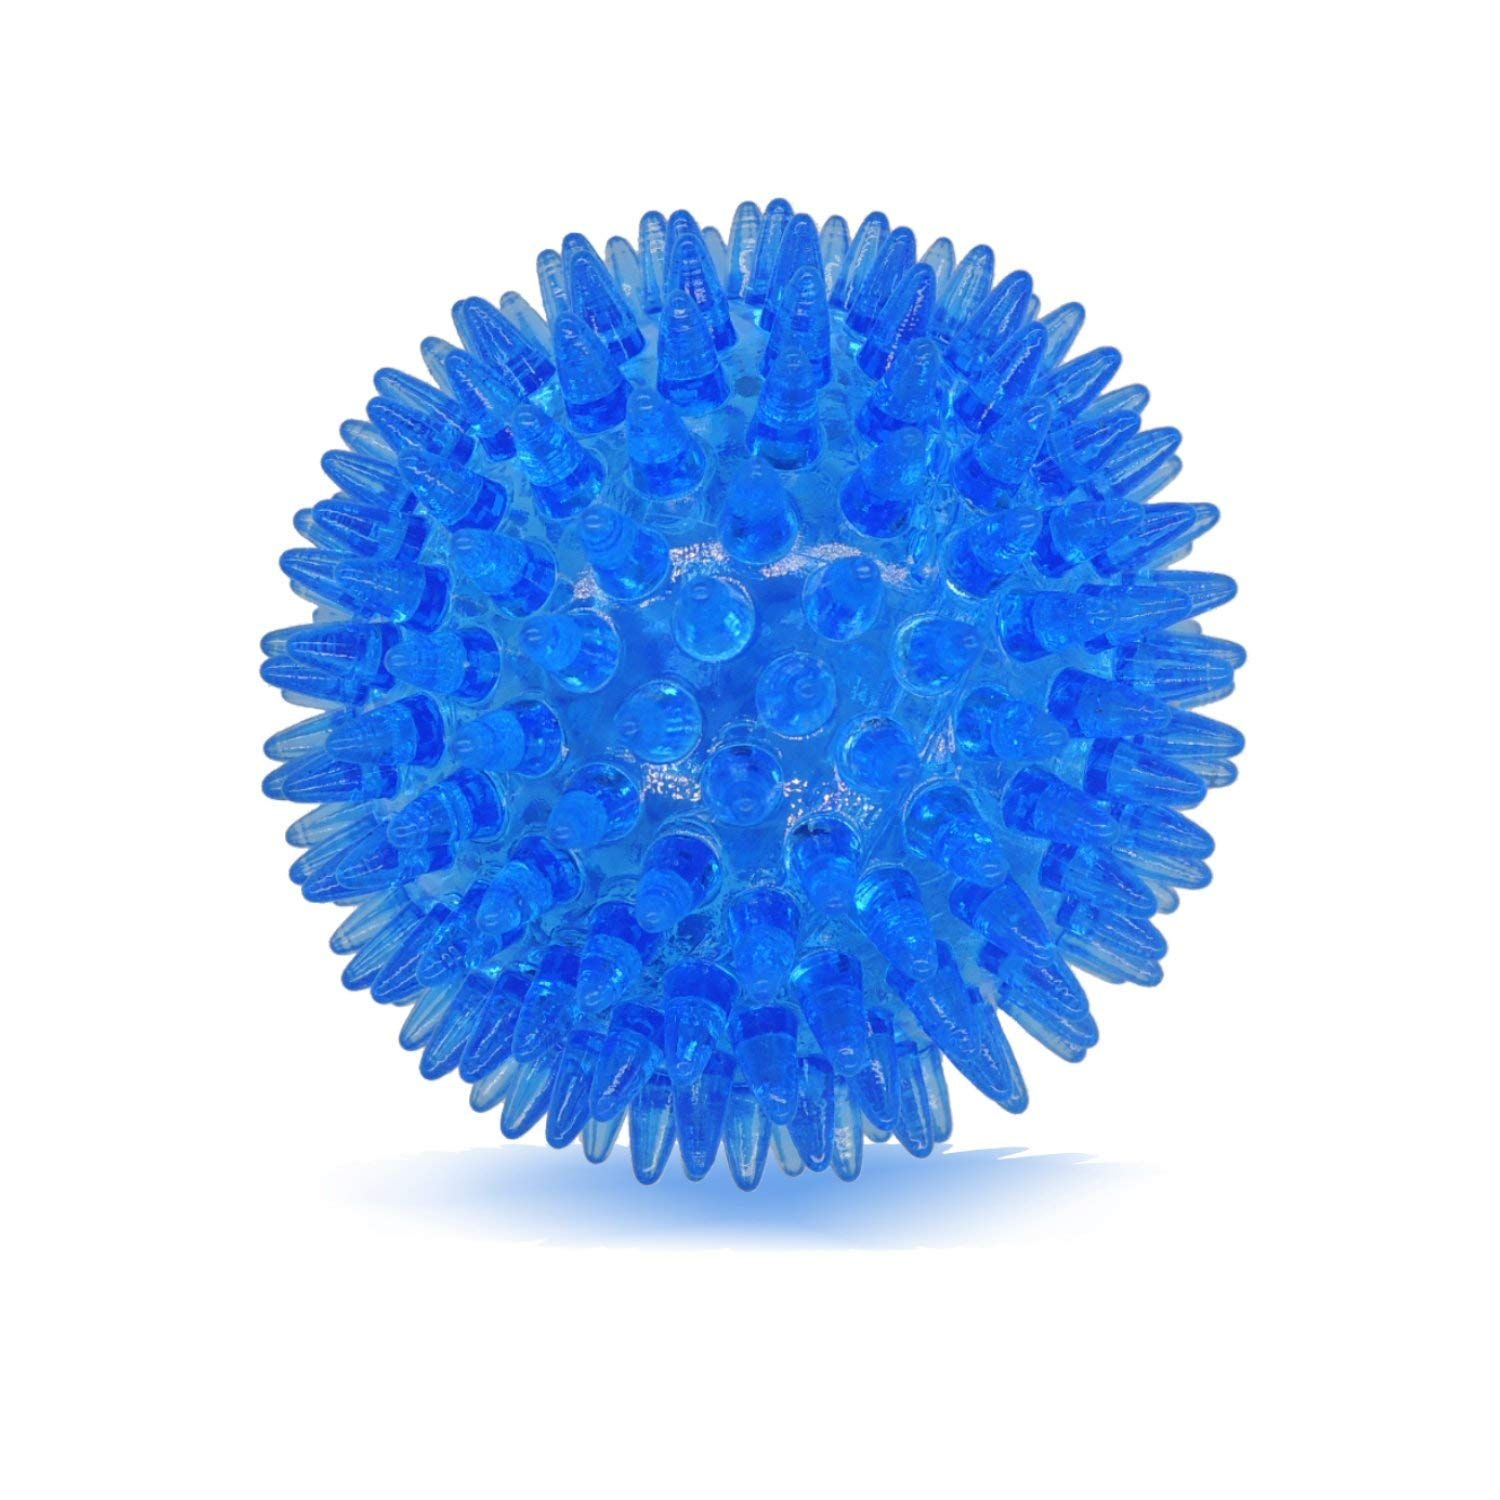 Dilight Blue Medium Large Squeaker Spiky Ball Dog Toy Light Chew